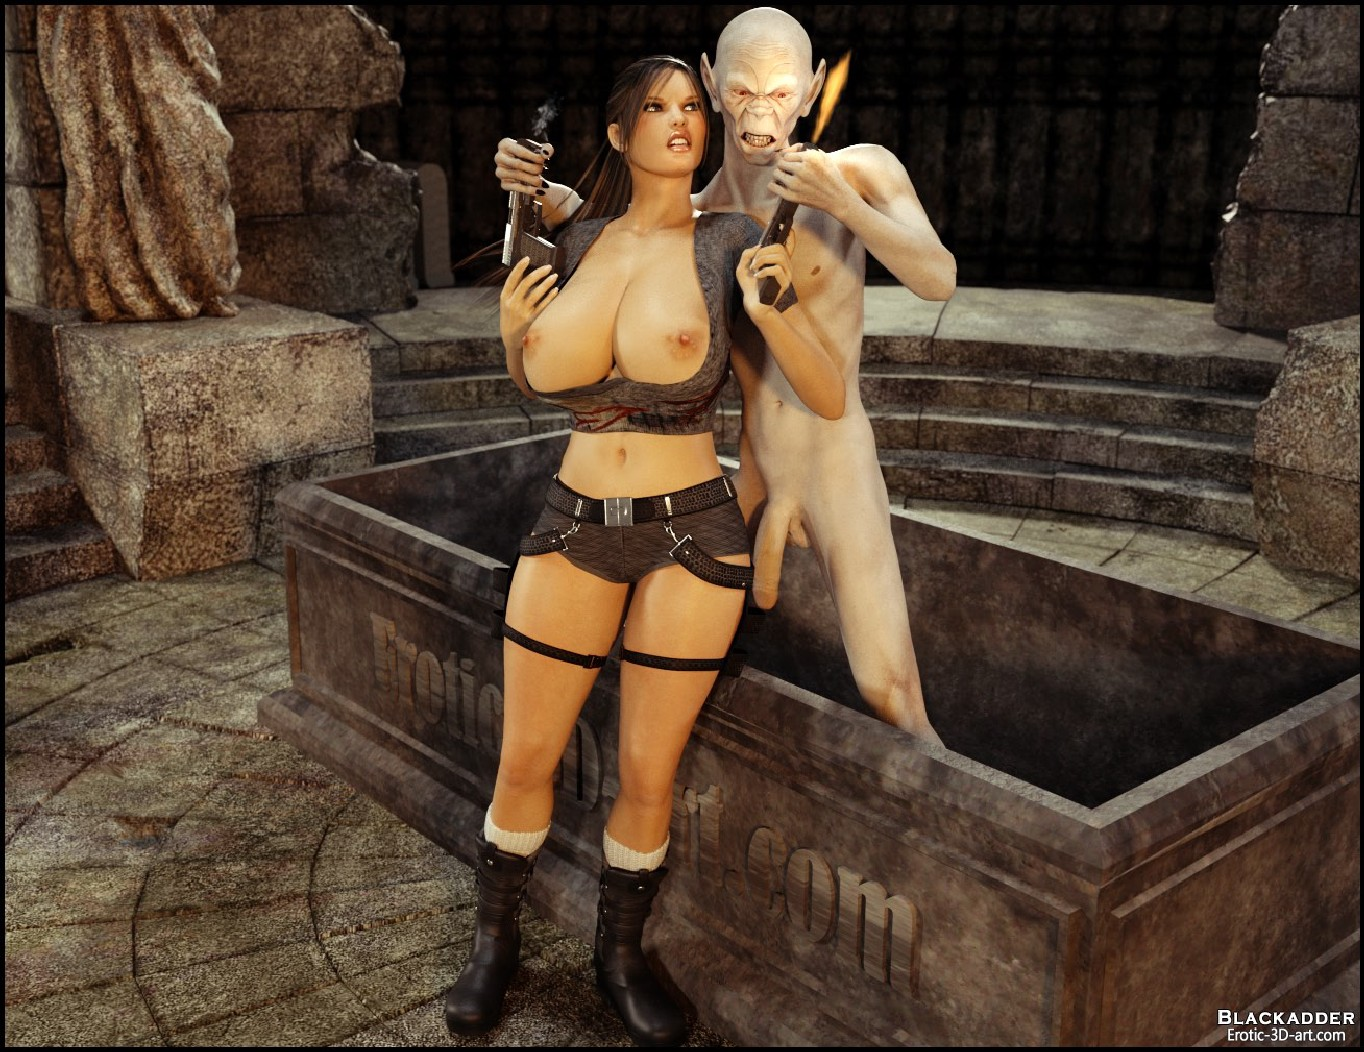 Free lara croft hentai monster erotic pic